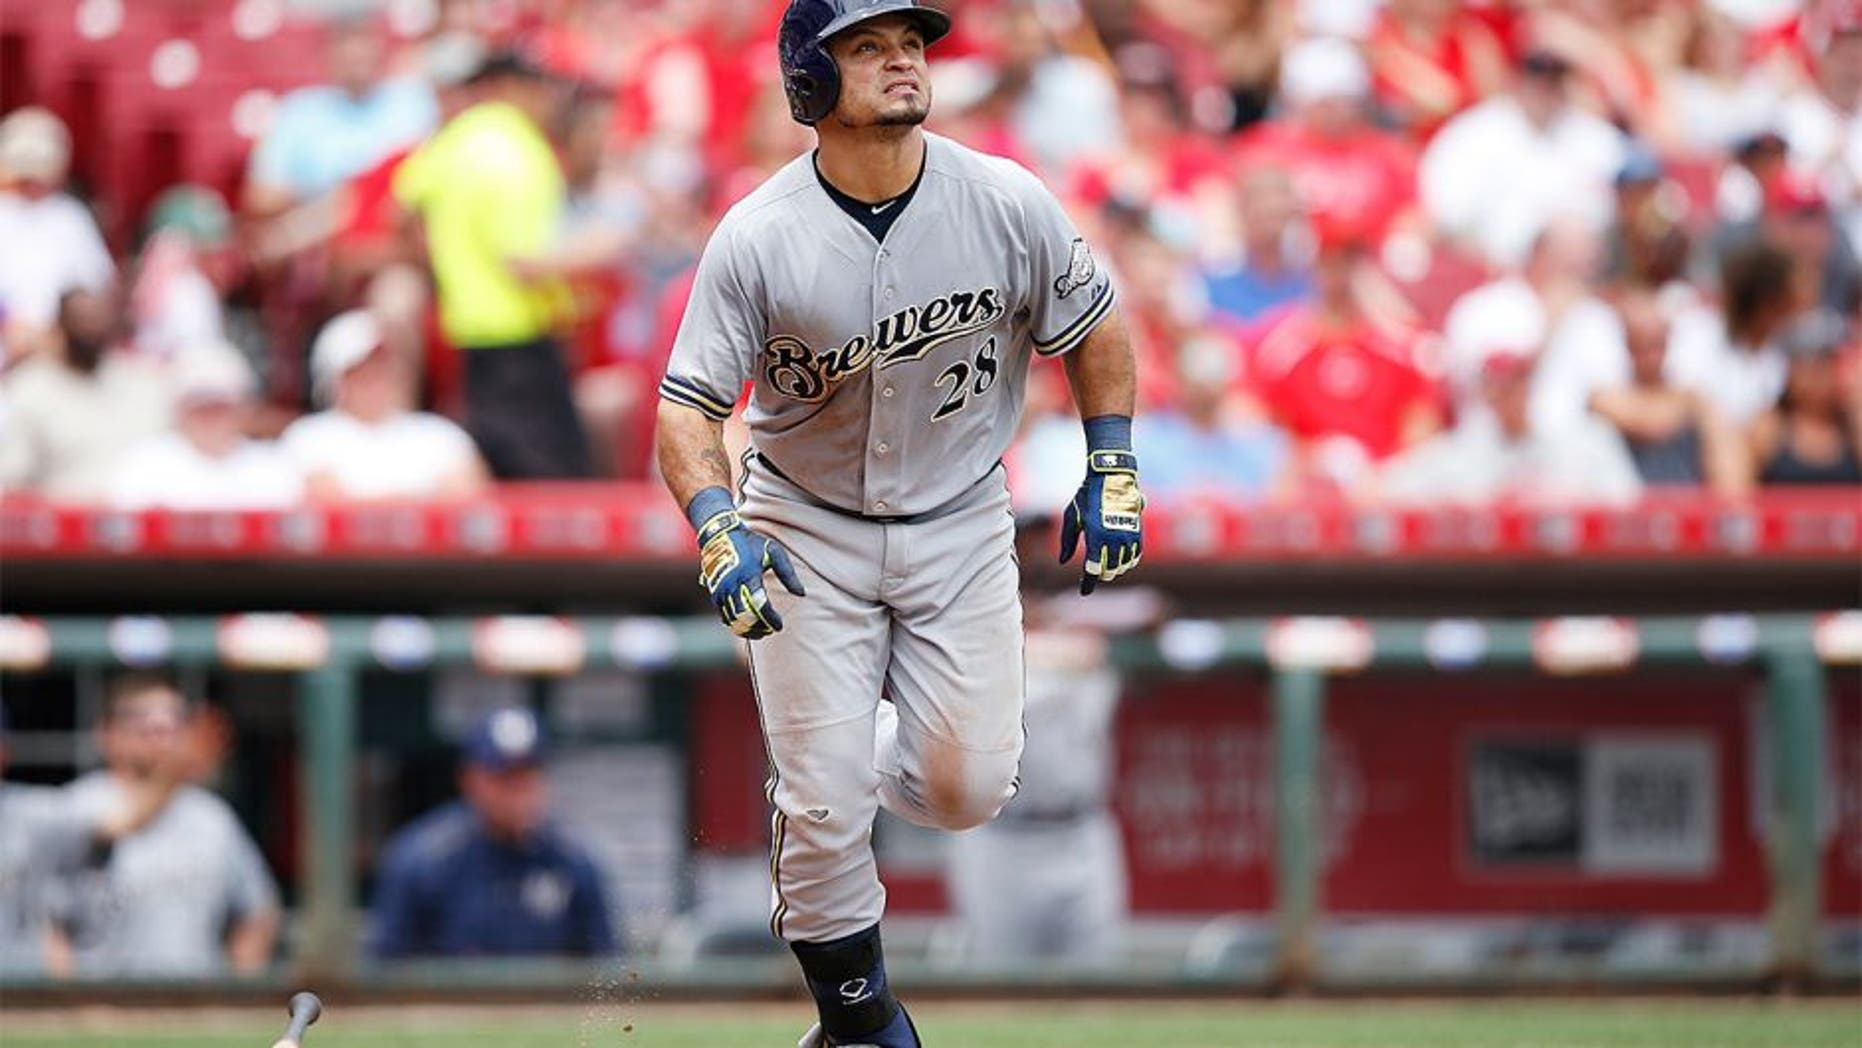 CINCINNATI, OH - JULY 5: Gerardo Parra #28 of the Milwaukee Brewers watches his solo home run in the seventh inning against the Cincinnati Reds at Great American Ball Park on July 5, 2015 in Cincinnati, Ohio. The Brewers defeated the Reds 6-1. (Photo by Joe Robbins/Getty Images)